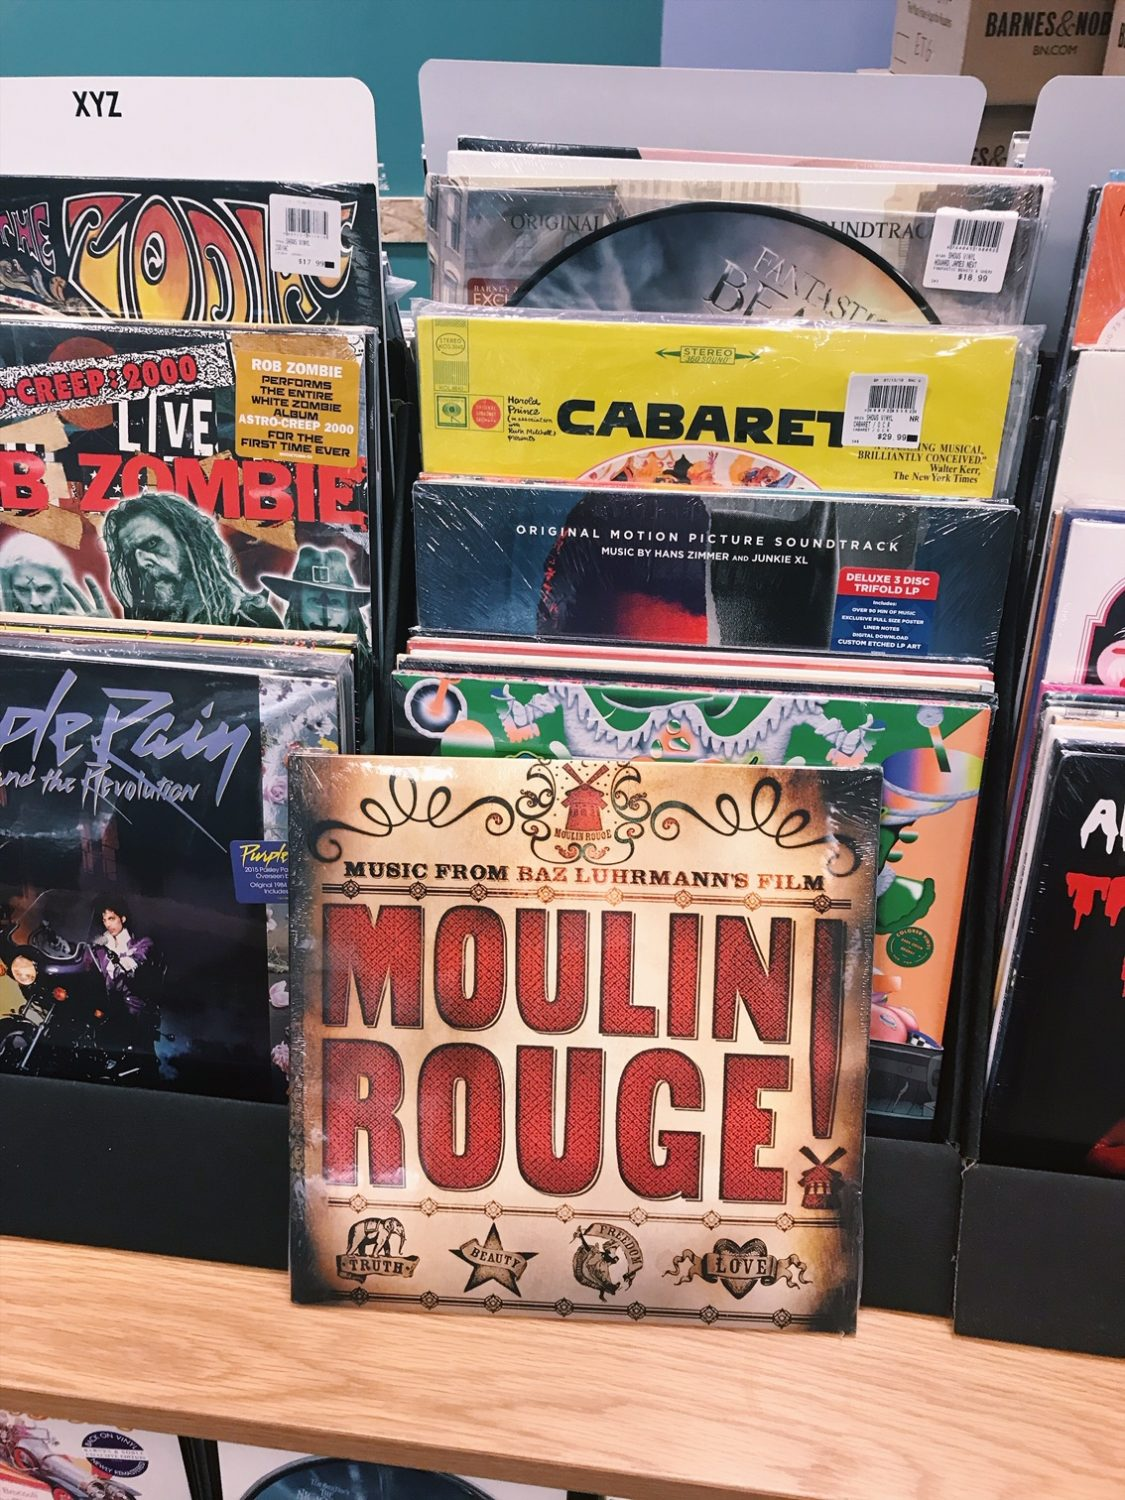 Moulin Rouge Soundtrack Vinyl Record at Barnes & Noble